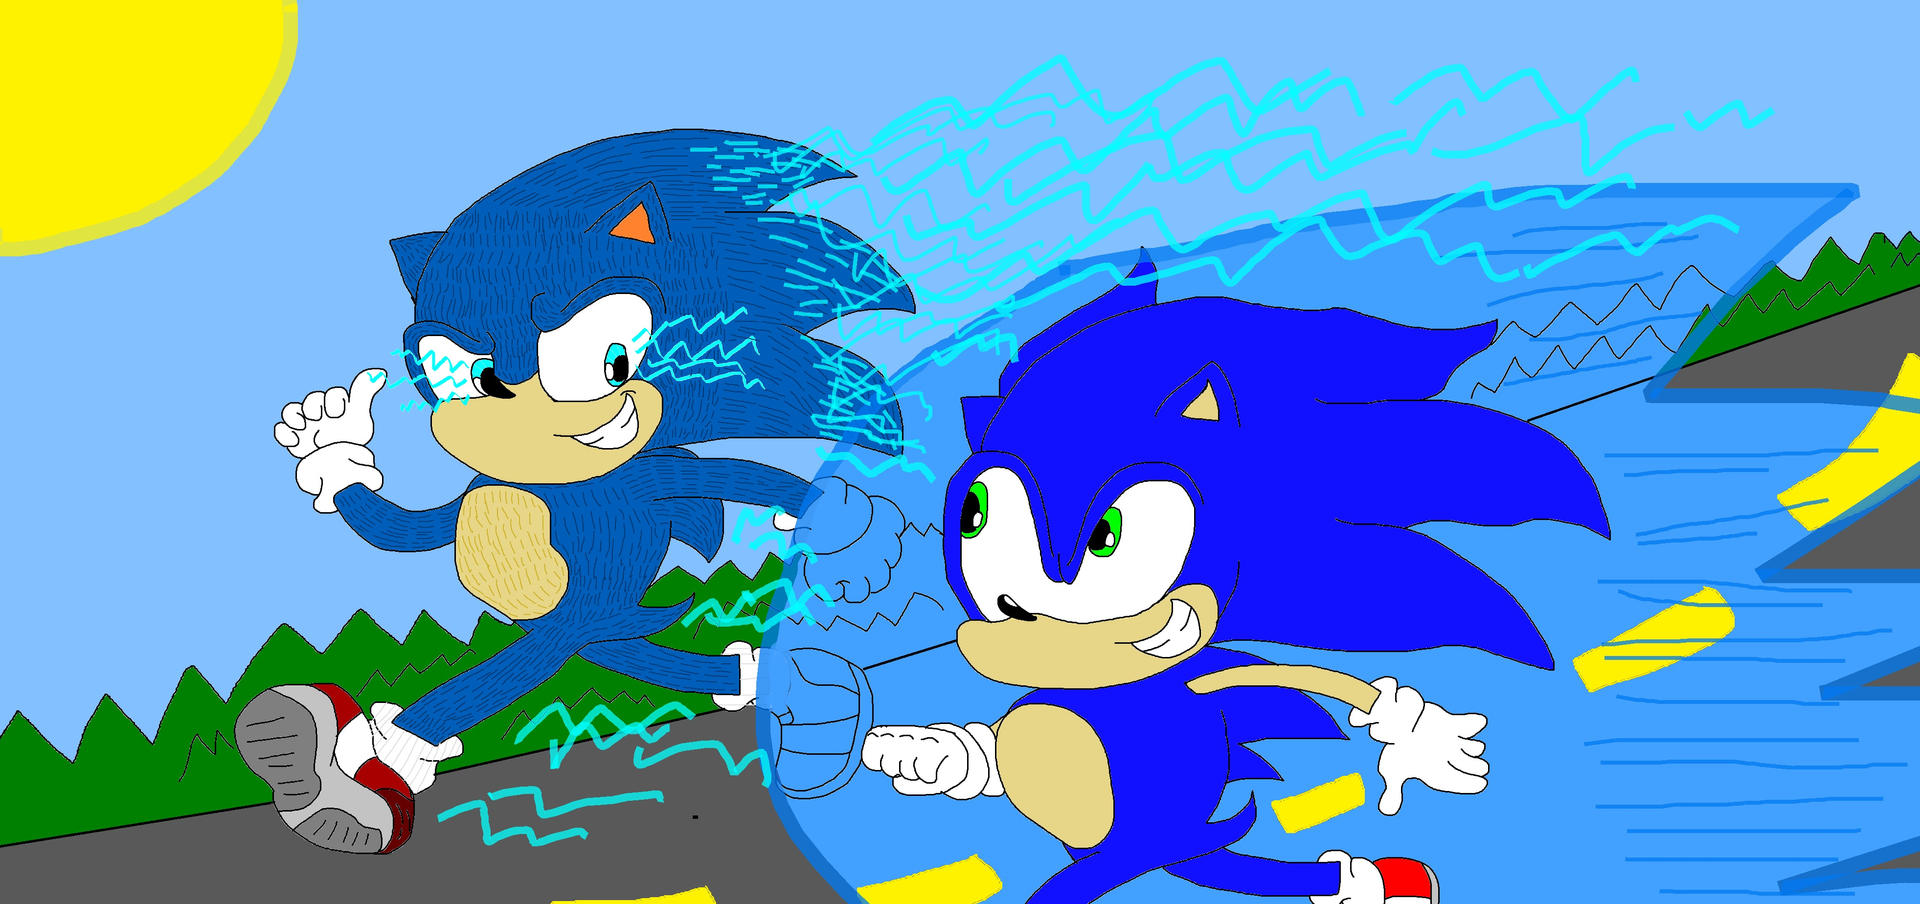 Video Game Sonic Vs Movie Sonic 2020 By Supershamoroniel On Deviantart